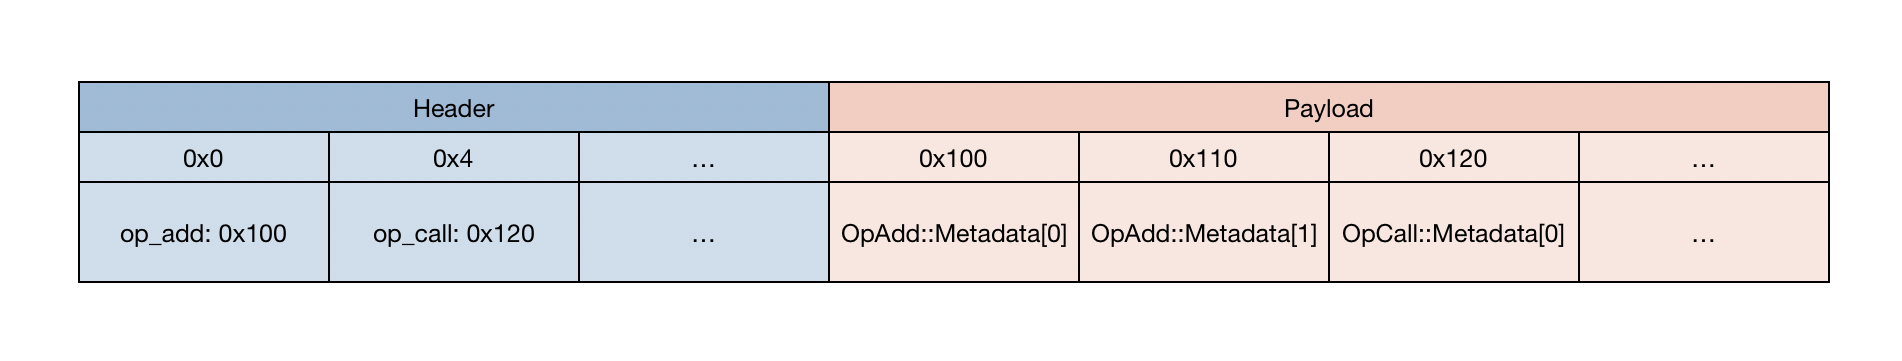 Metadata Memory Table